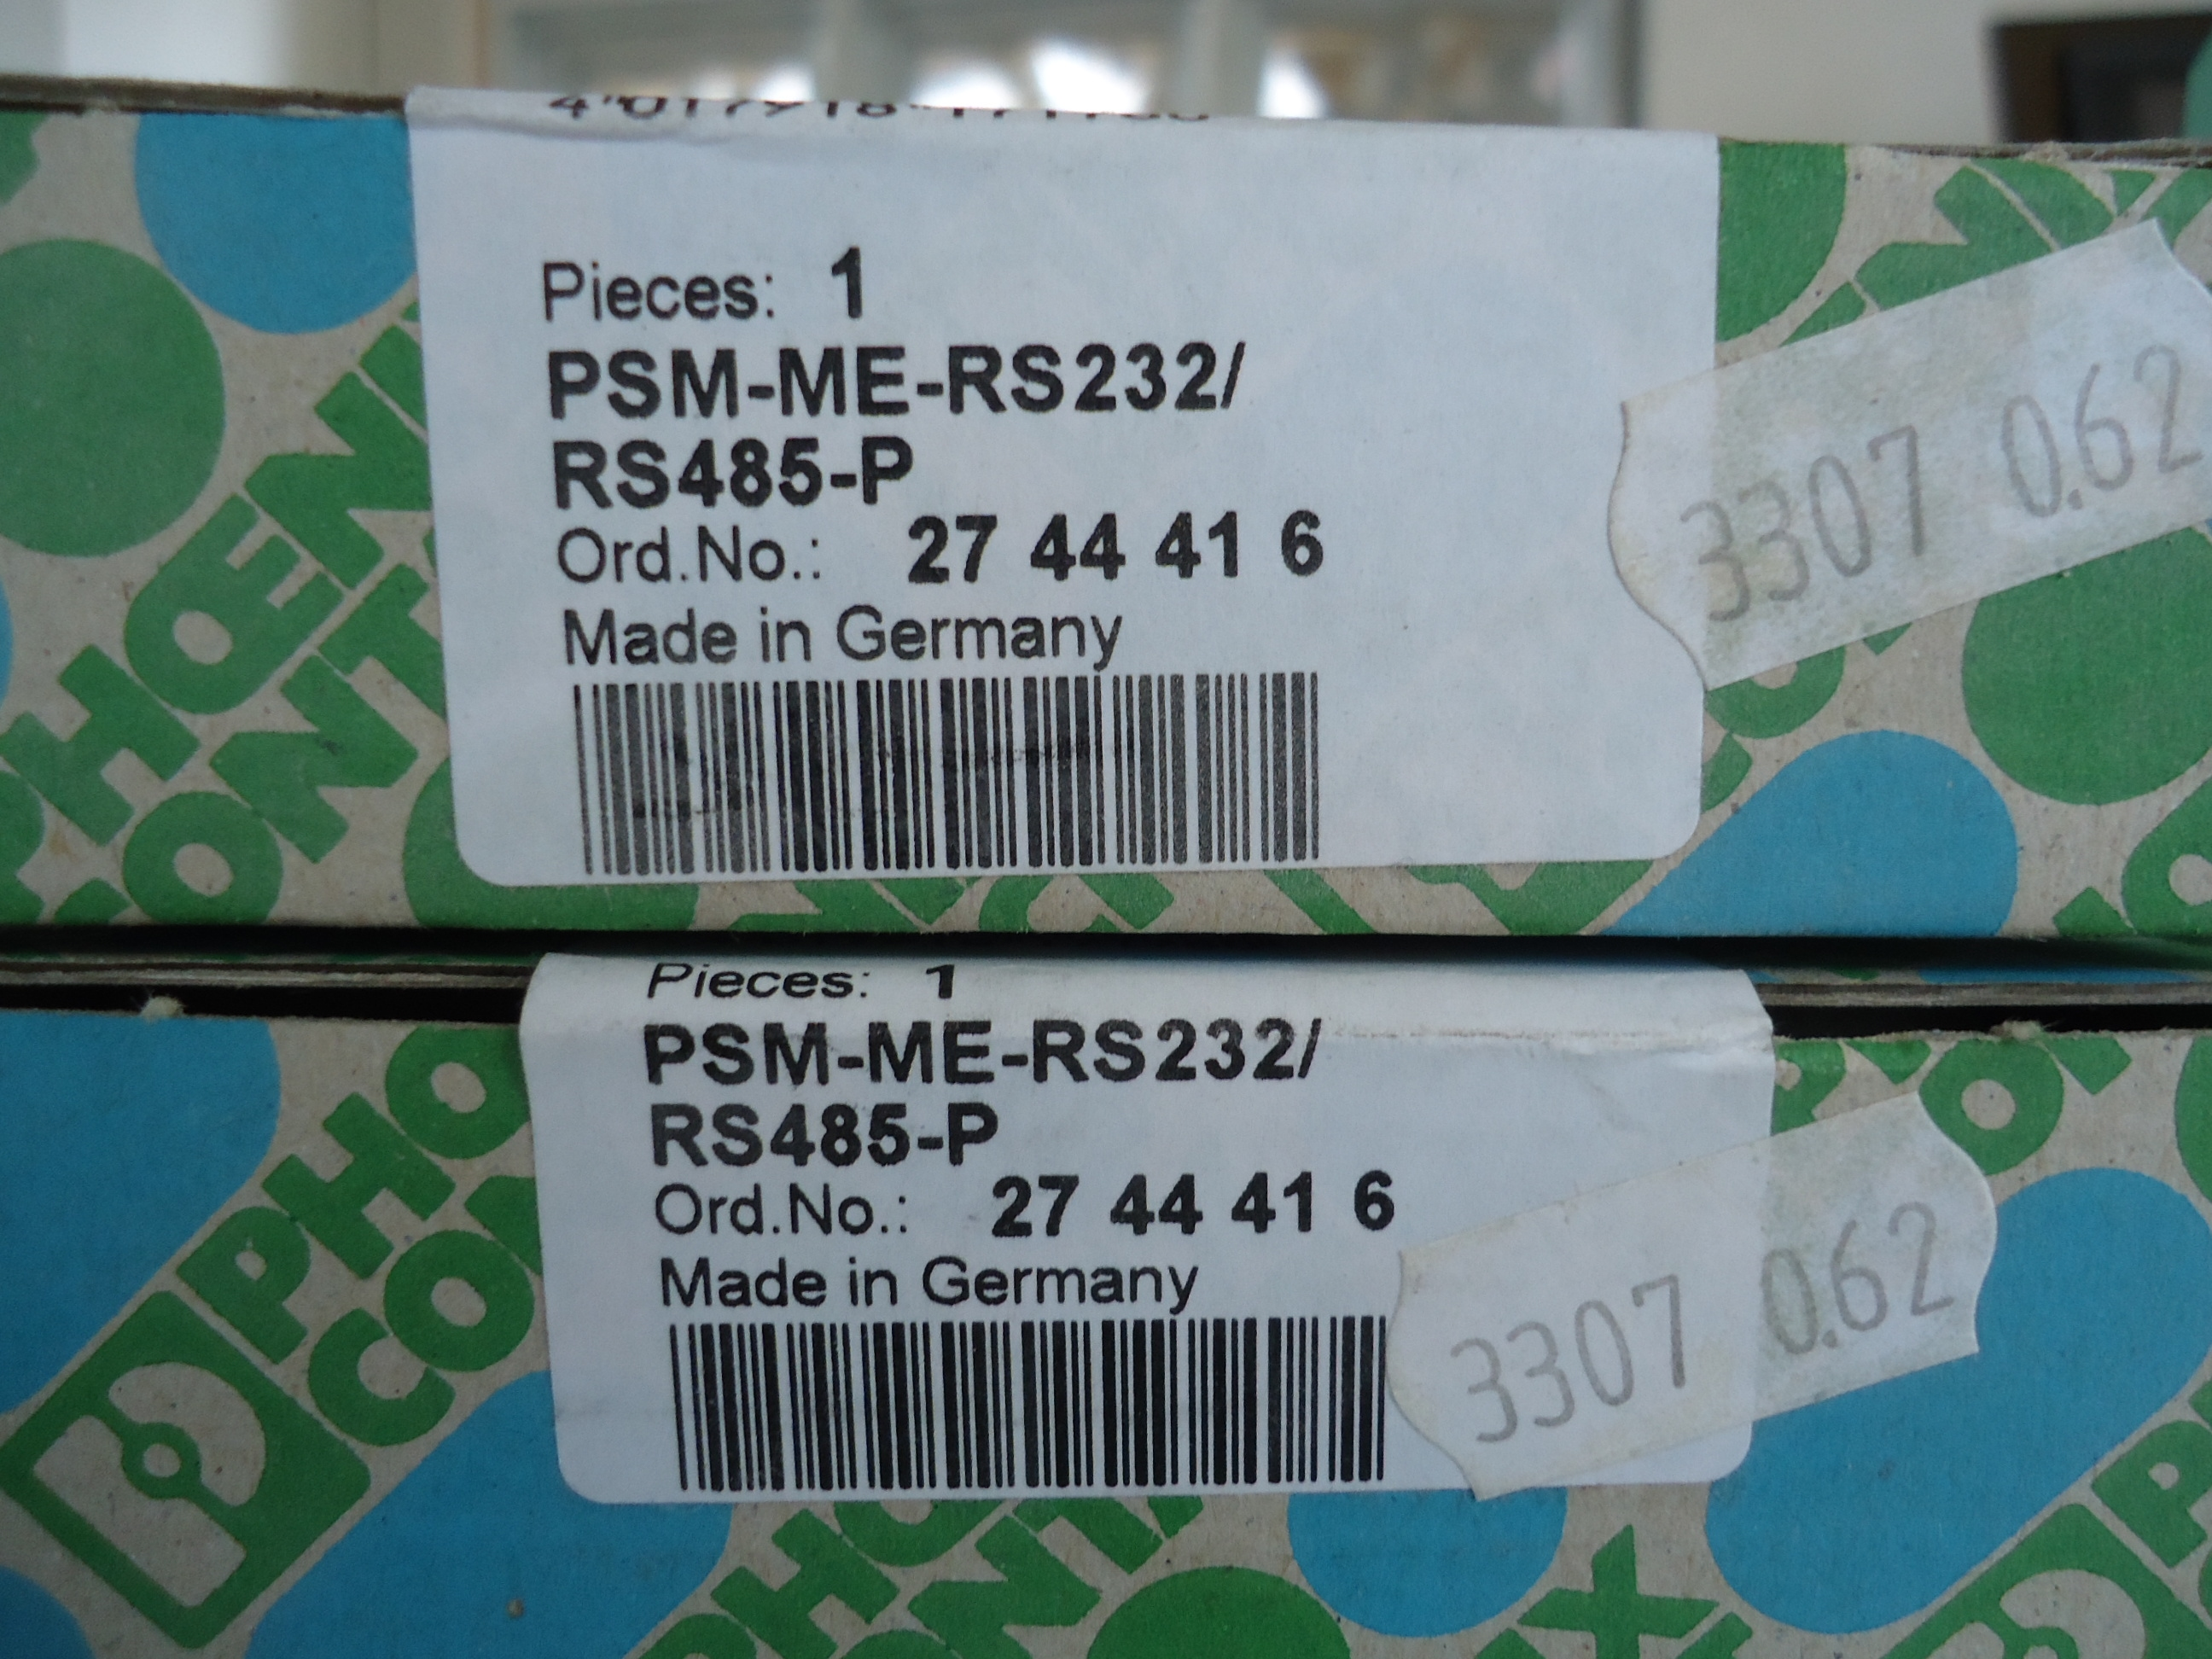 PSM-ME-RS232/RS485P Phoenix Contact